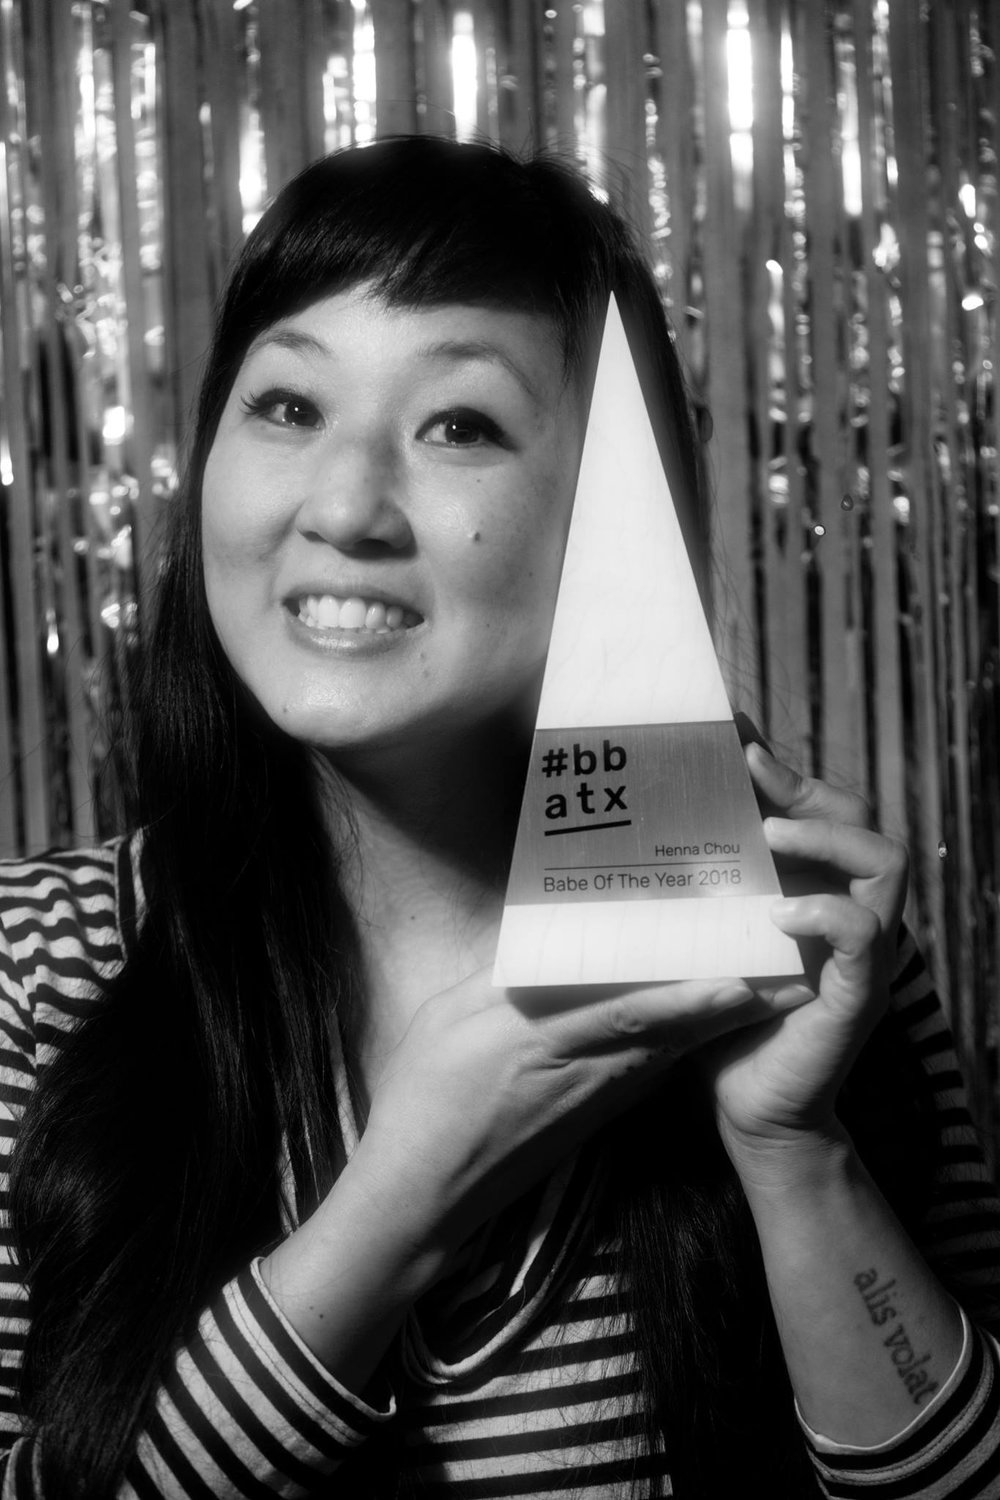 Henna Chou (pictured) with her custom Babe of the Year trophy by  Trophyology . Photo by Jinni J